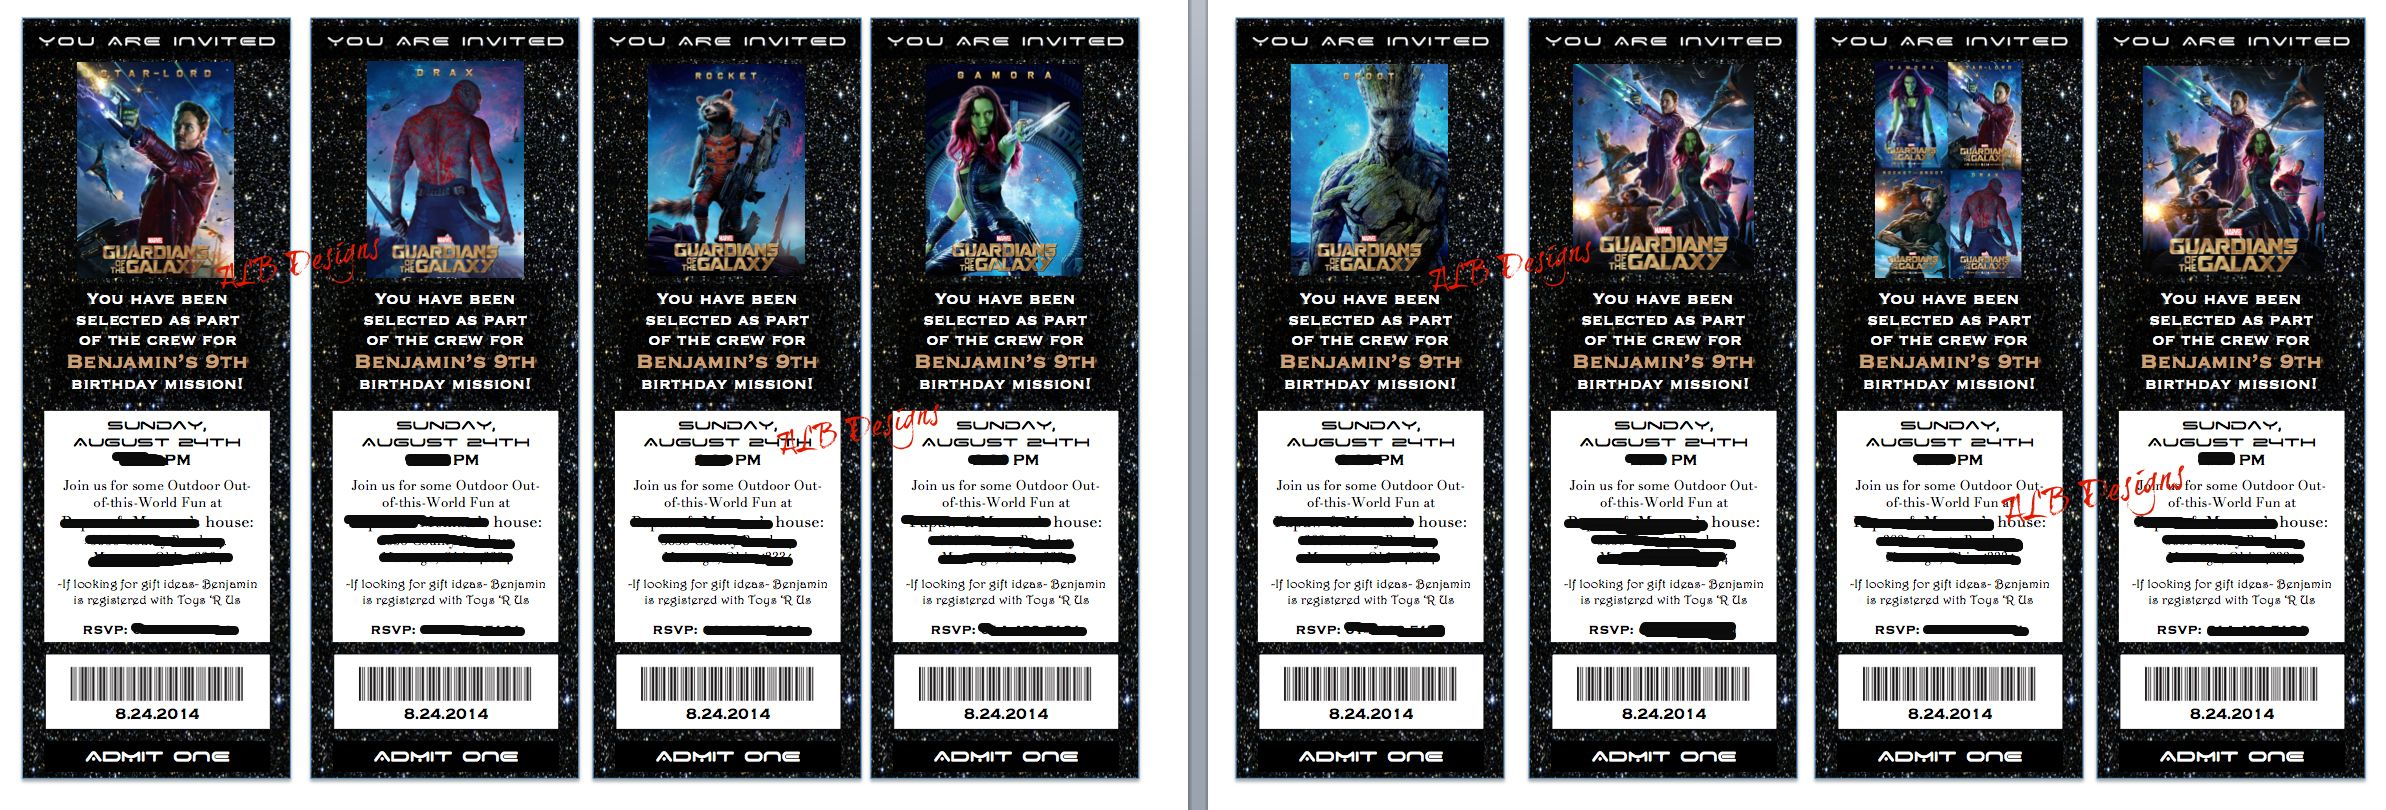 Guardians Of The Galaxy Birthday Party Invitations GOTG I Made These Individual Movie Tickets On Word Each Family Will Get X Amount Based